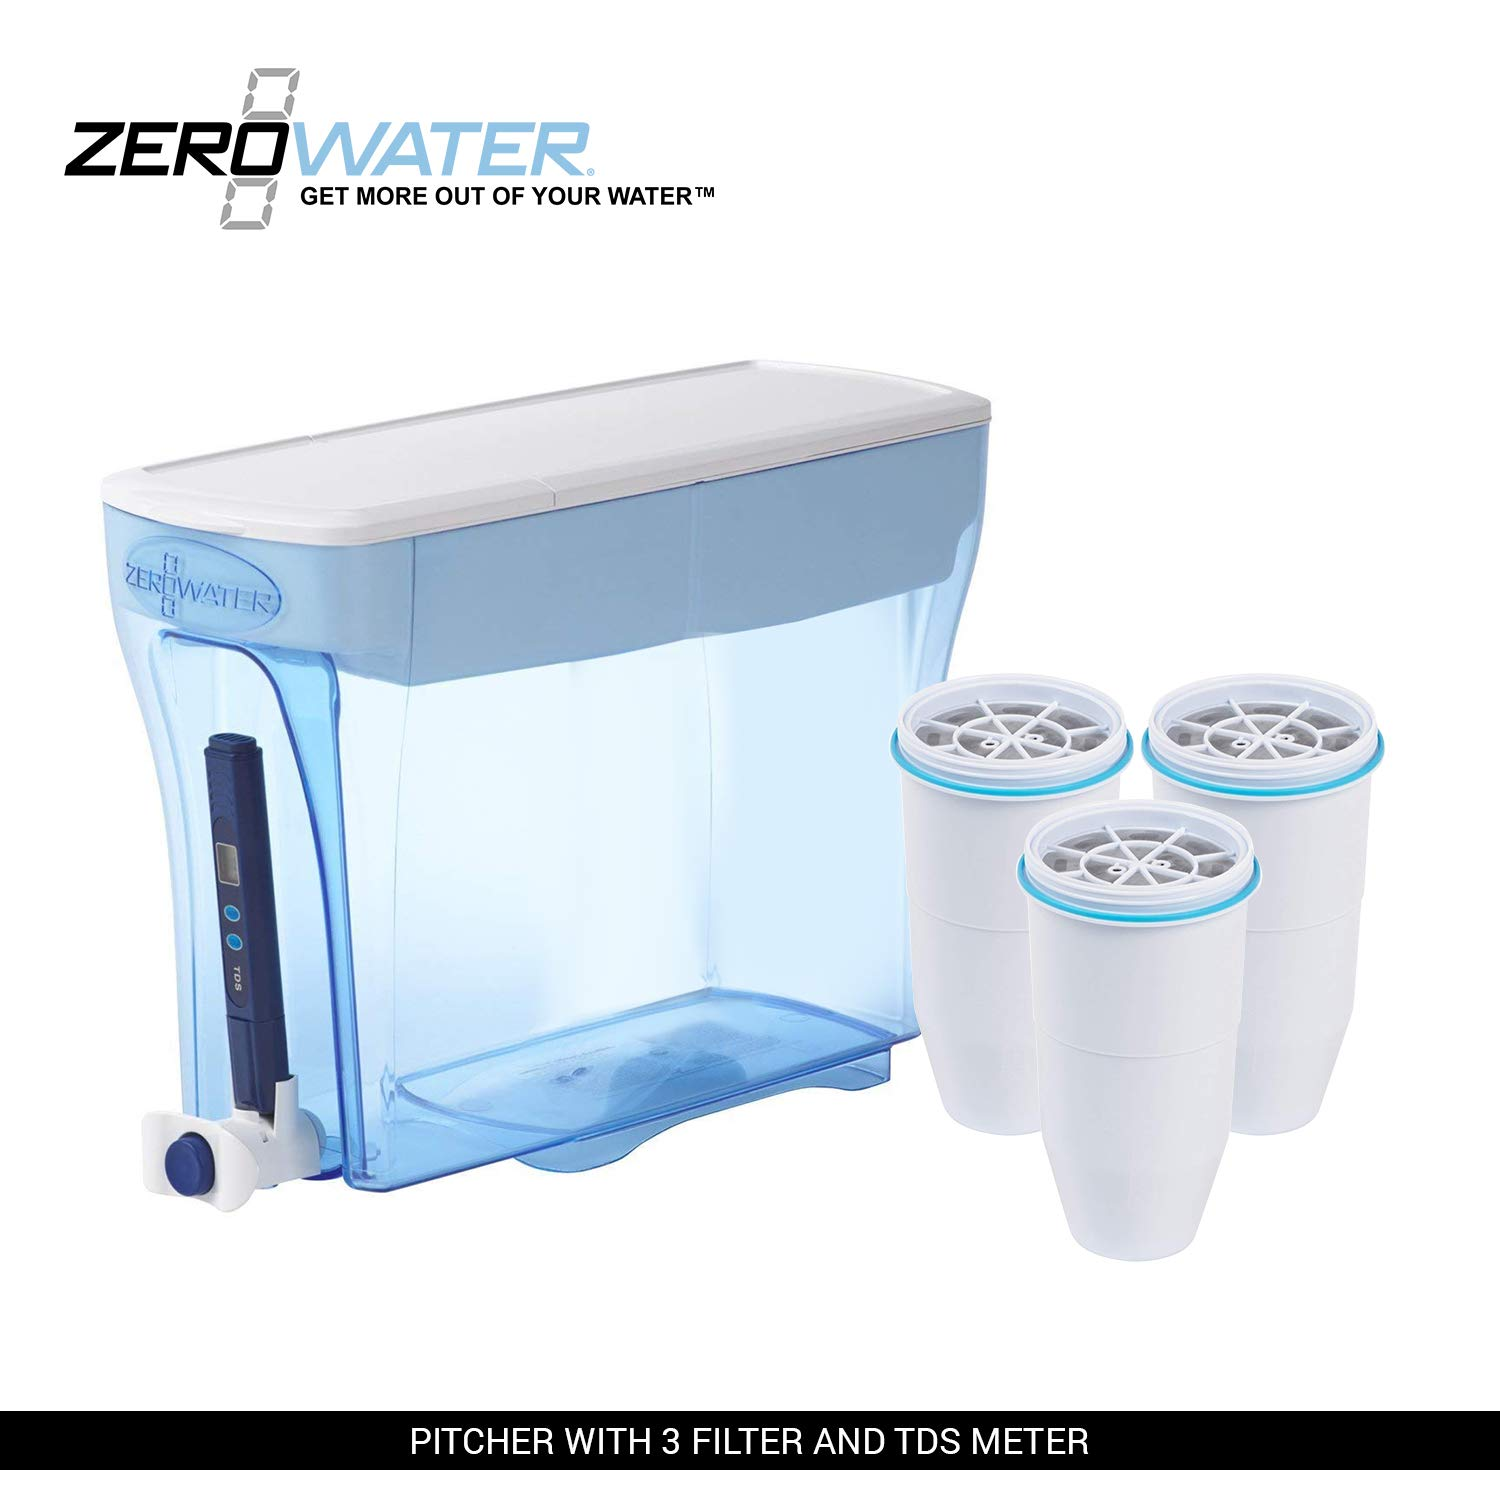 ZeroWater 23-Cup Pitcher with 3 Filters and Water Quality Meter